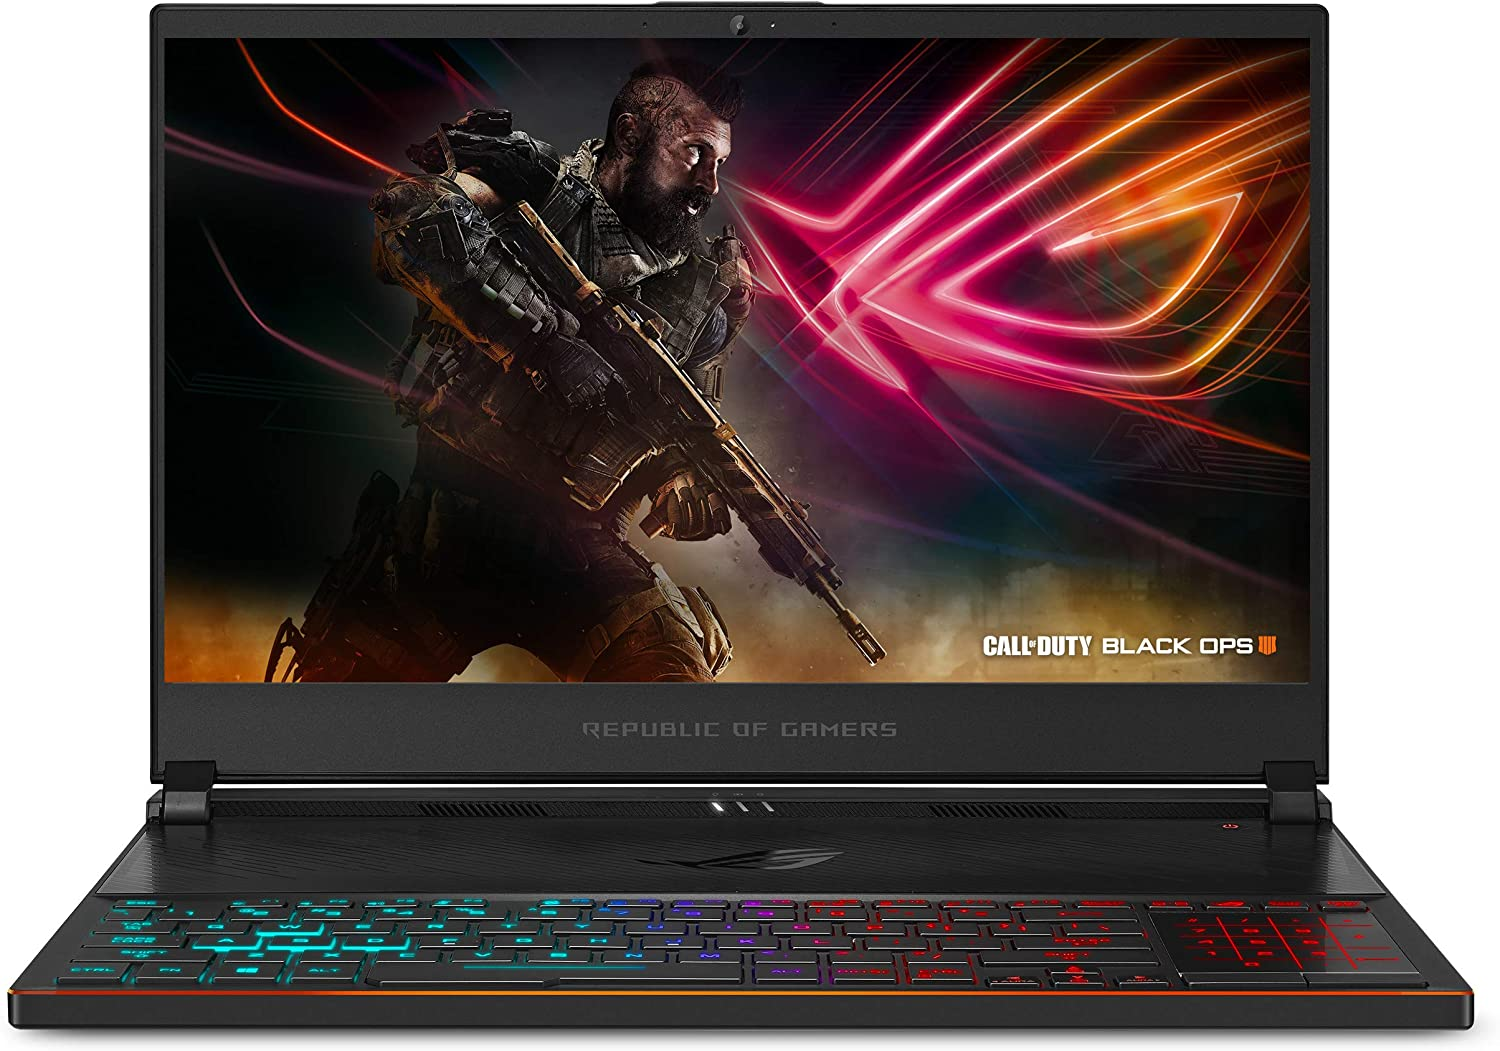 "ASUS ROG Zephyrus S Ultra Slim Gaming Laptop, 15.6"" 144Hz IPS Type, Intel i7-8750H Processor, GeForce GTX 1070 8GB, 24GB DDR4, 1TB PCIe NVMe SSD, Military-Grade Chassis, Windows 10 Home - GX531GS-AH78"